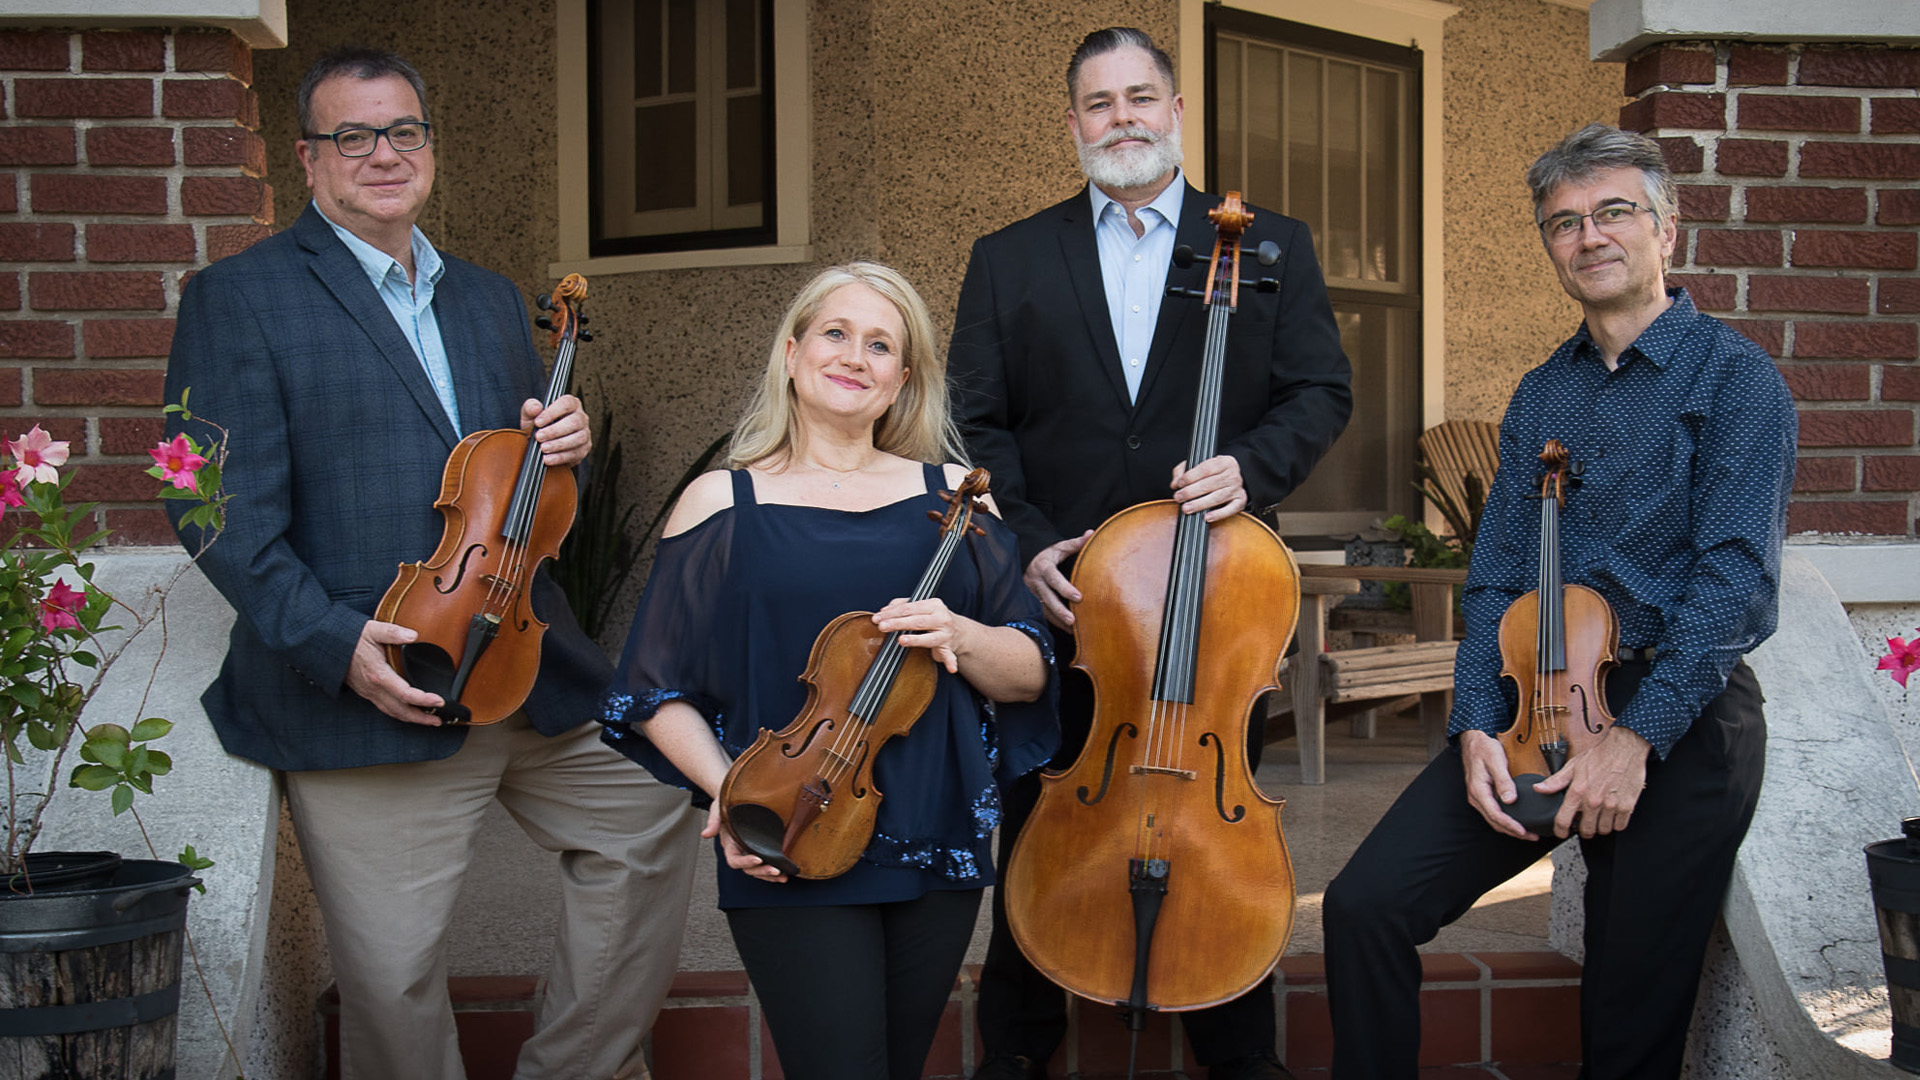 The four members of the Fernwood String Quartet pose in front of a house with their instruments. From left to right: Juan Carlos Siviero, viola; Julia Gessinger, violin; Hanrich Claassen, cello; Andreas Volmer, violin